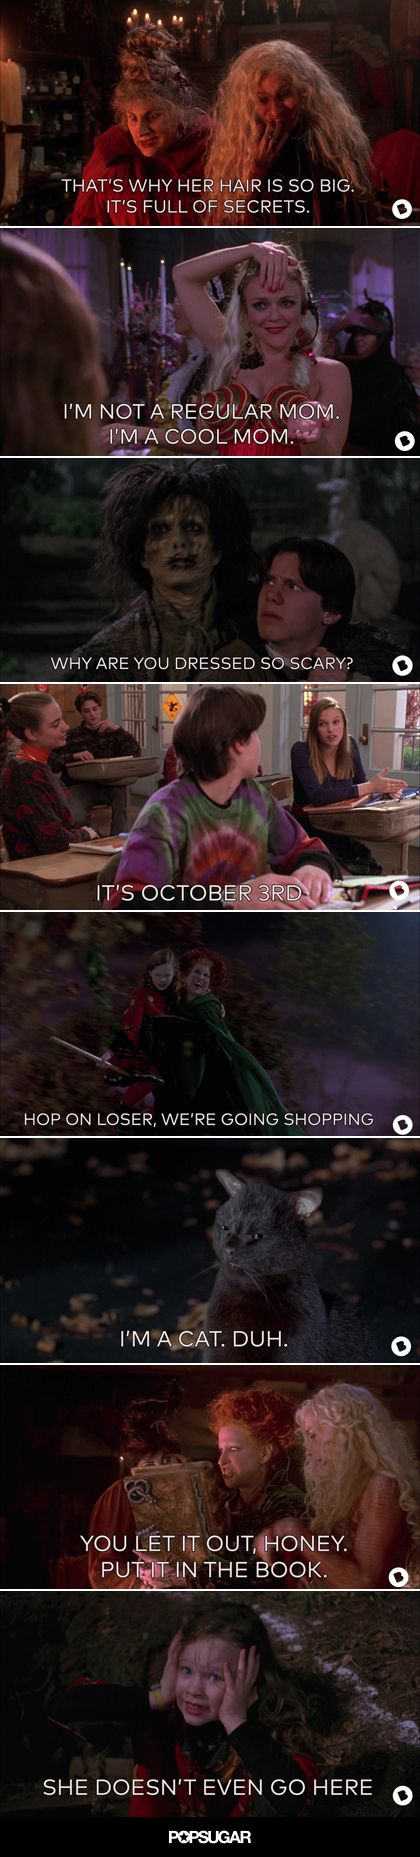 You Have to See This Mean Girls/Hocus Pocus Mashup